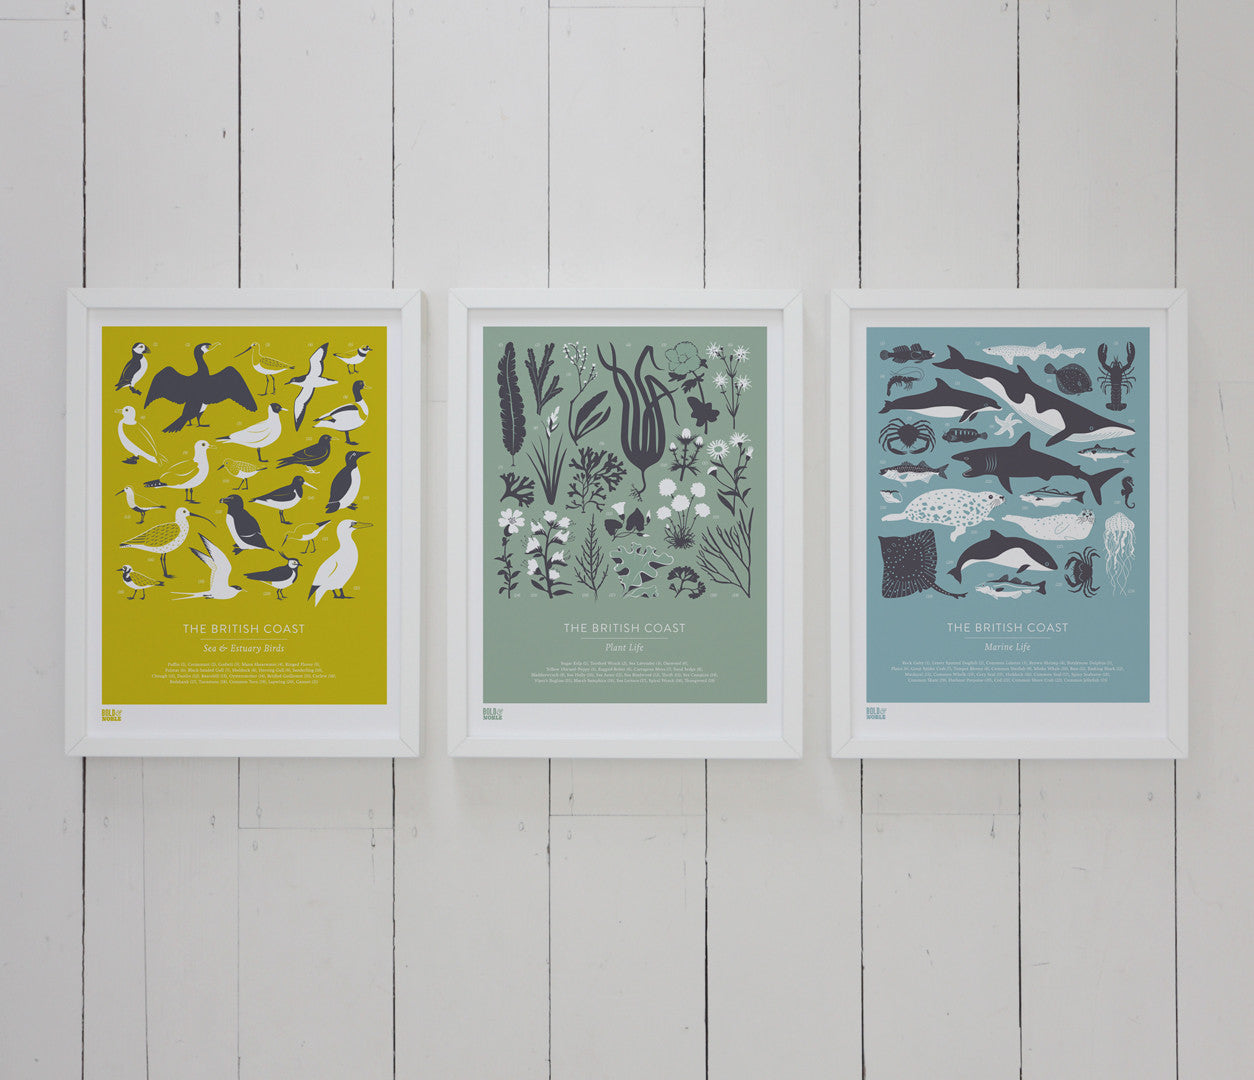 Wall art ideas, economical screen prints, Set of 3 British Coastal Plants, Birds and Marine Life prints